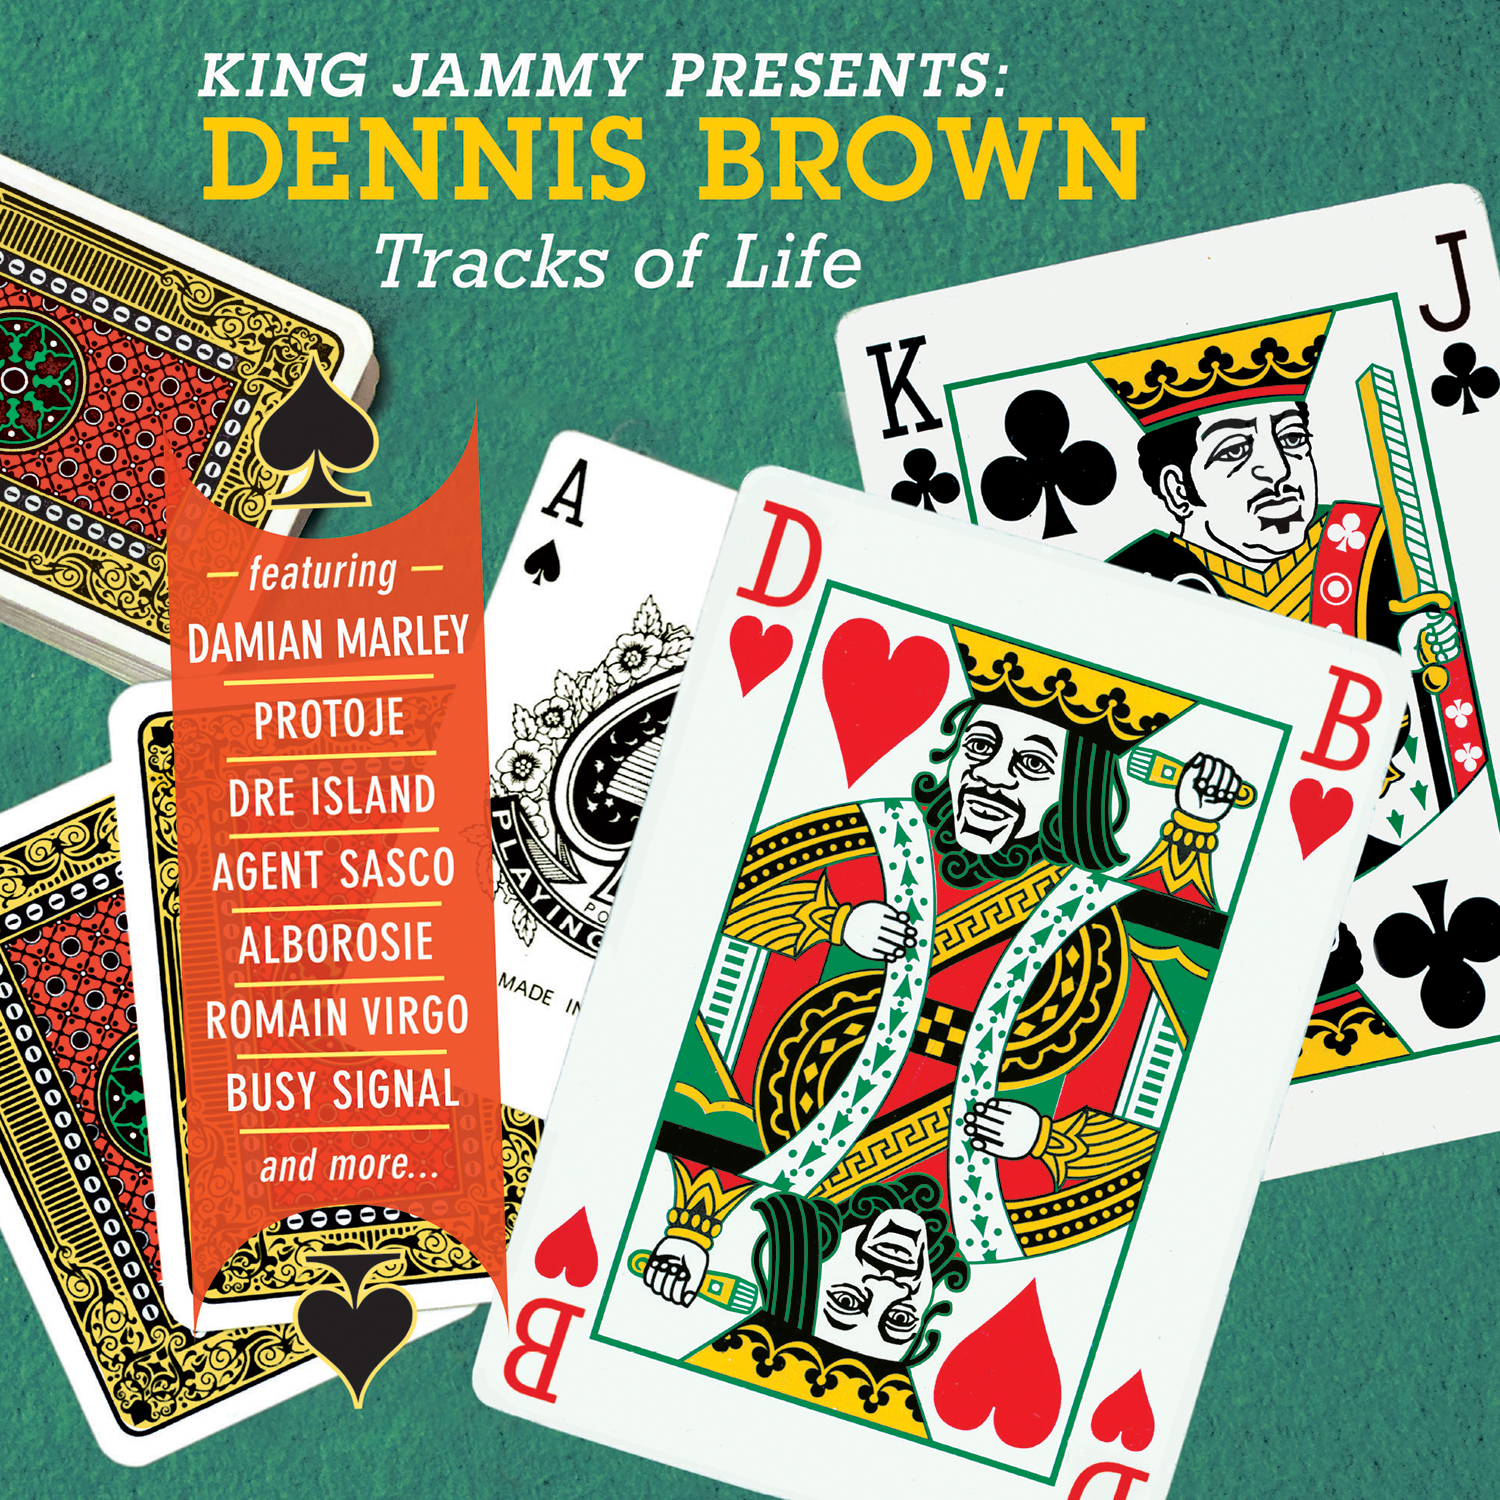 King Jammy presents Dennis Brown Tracks Of Life